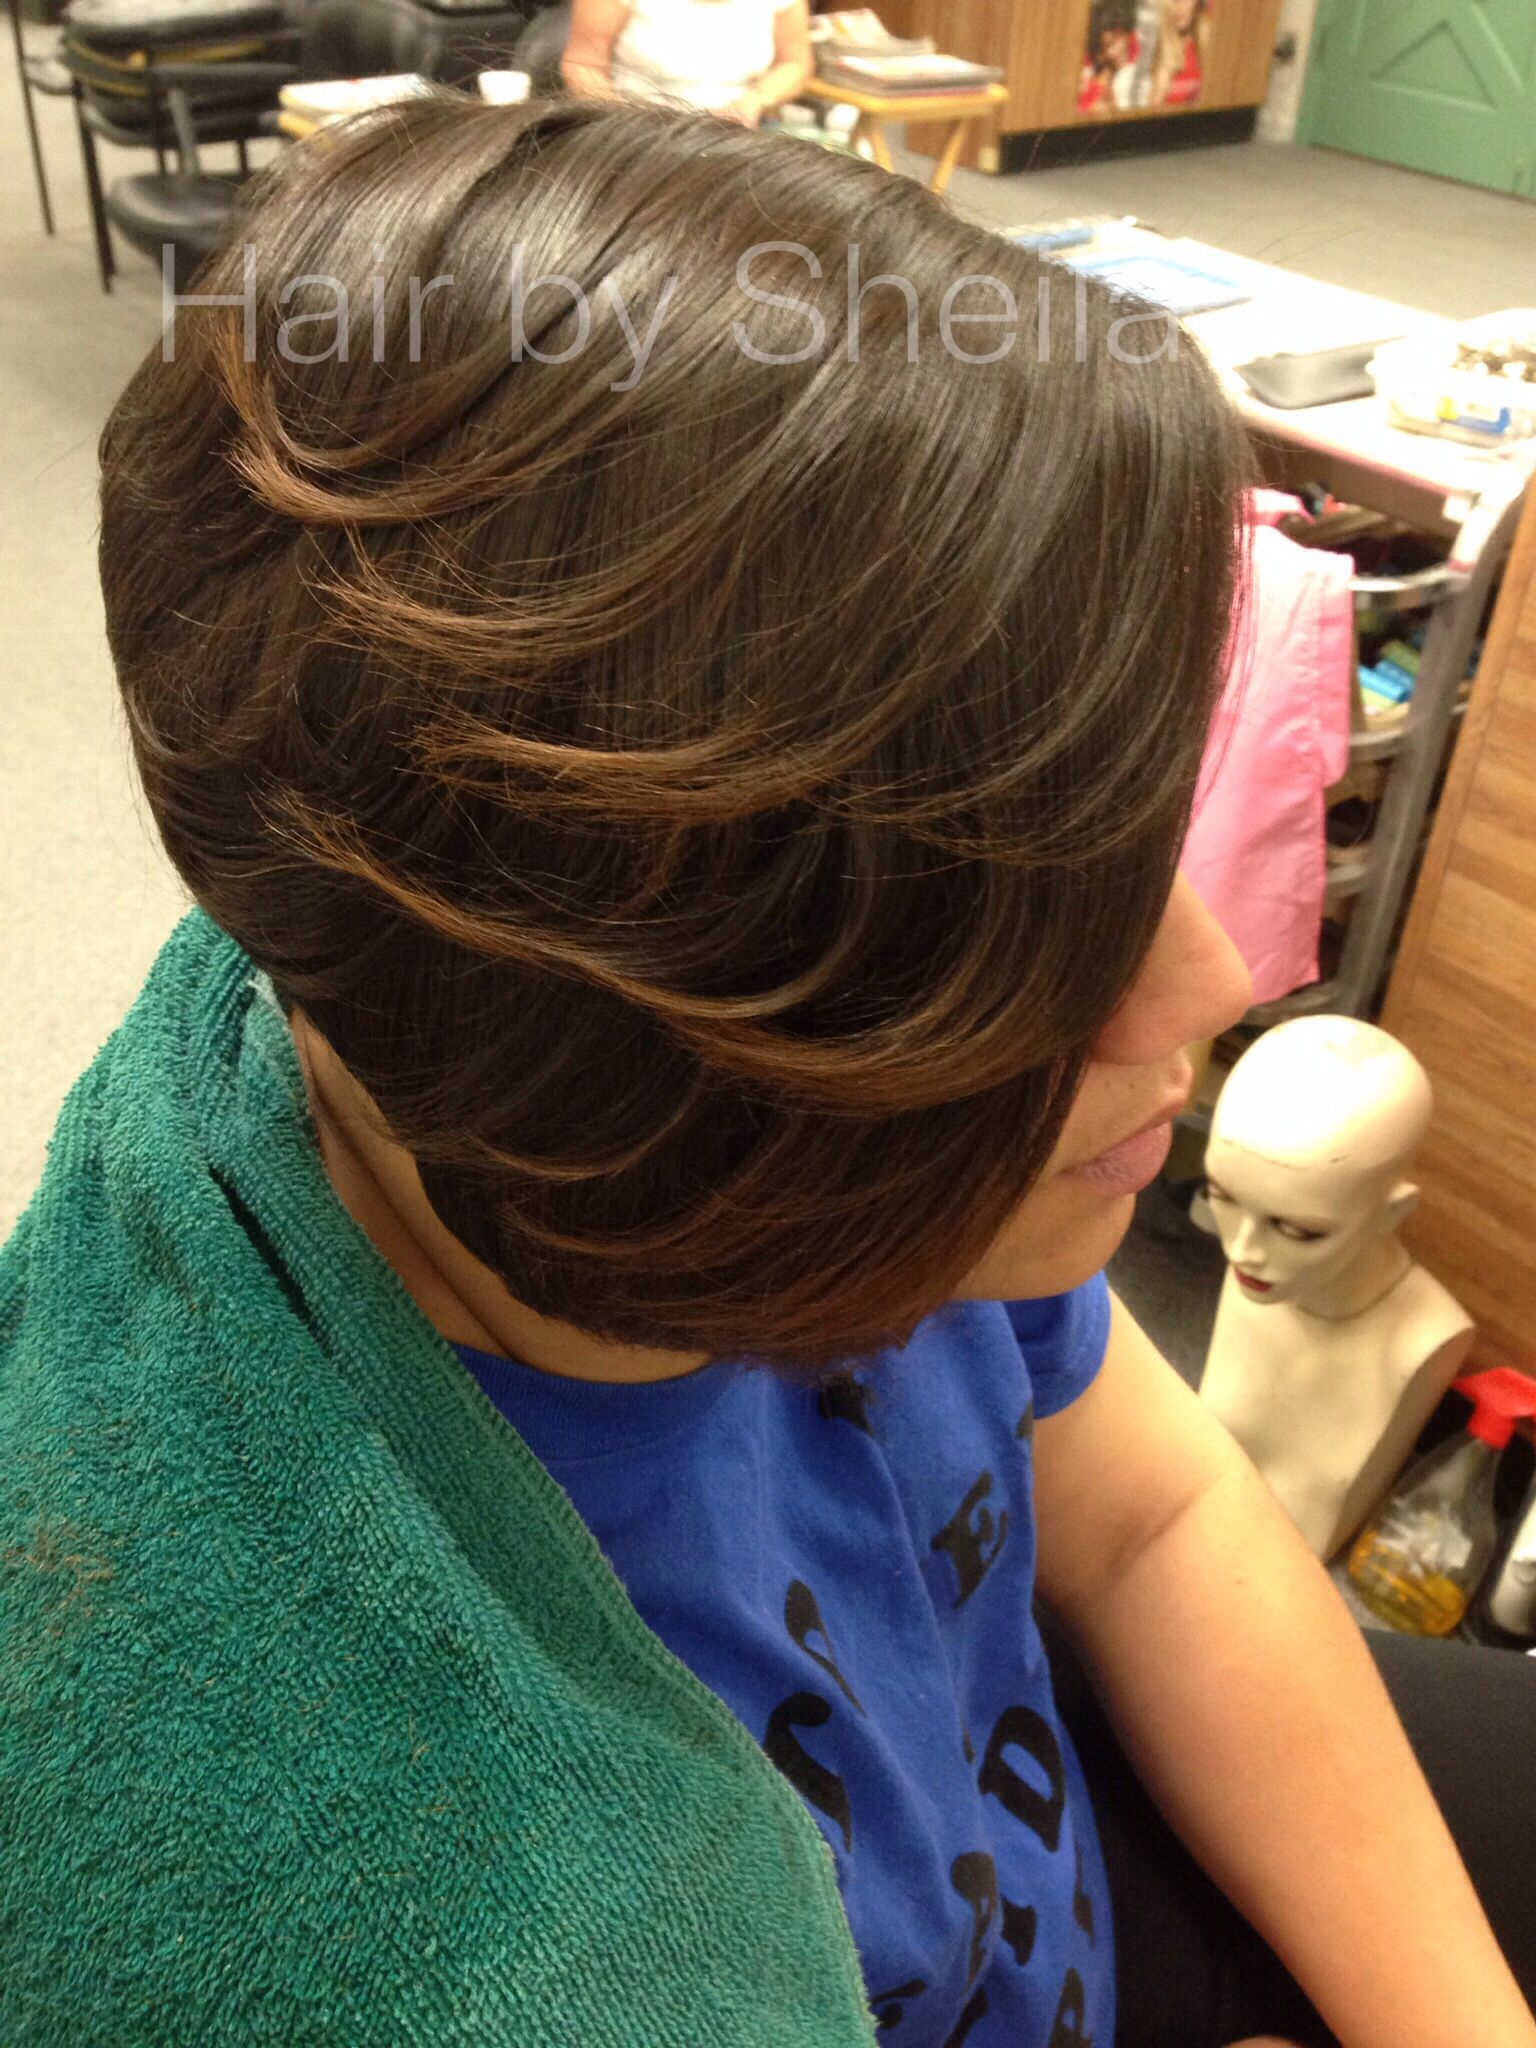 Lacee's half-bob with layers. Shaved sides. | Hair styles, Short hair styles, Hair makeup